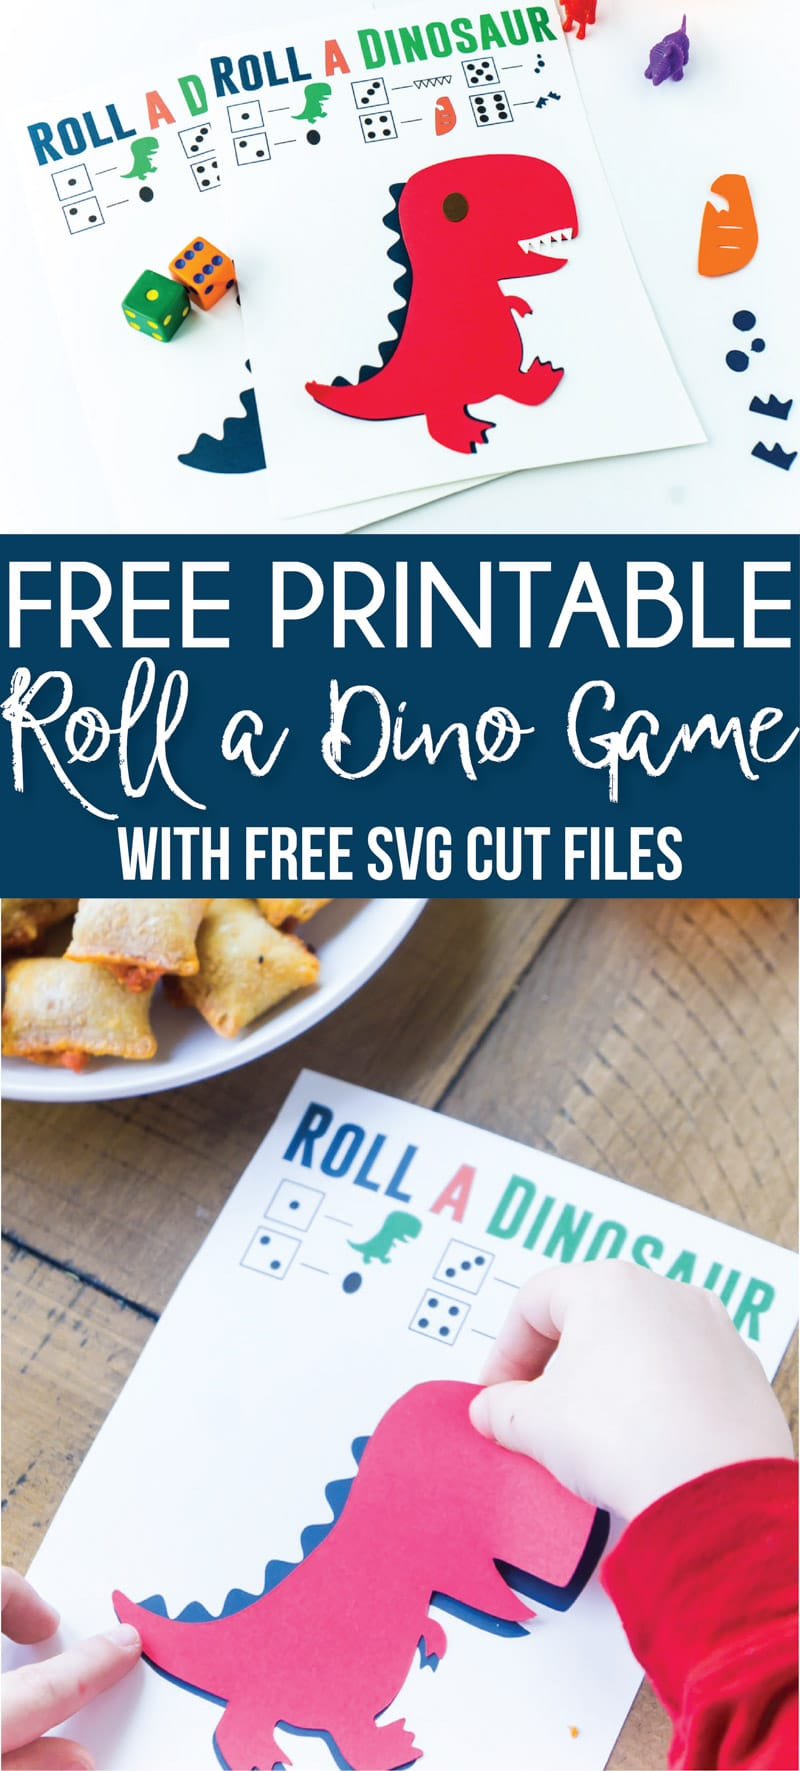 This free printable roll the dinosaur game is one of the cutest ideas for a dinosaur birthday party! Simply print out the printables, hand out the games, and play! Kids will love trying to compete their dinosaur! It's one of the best activities for boys and girls! via @playpartyplan